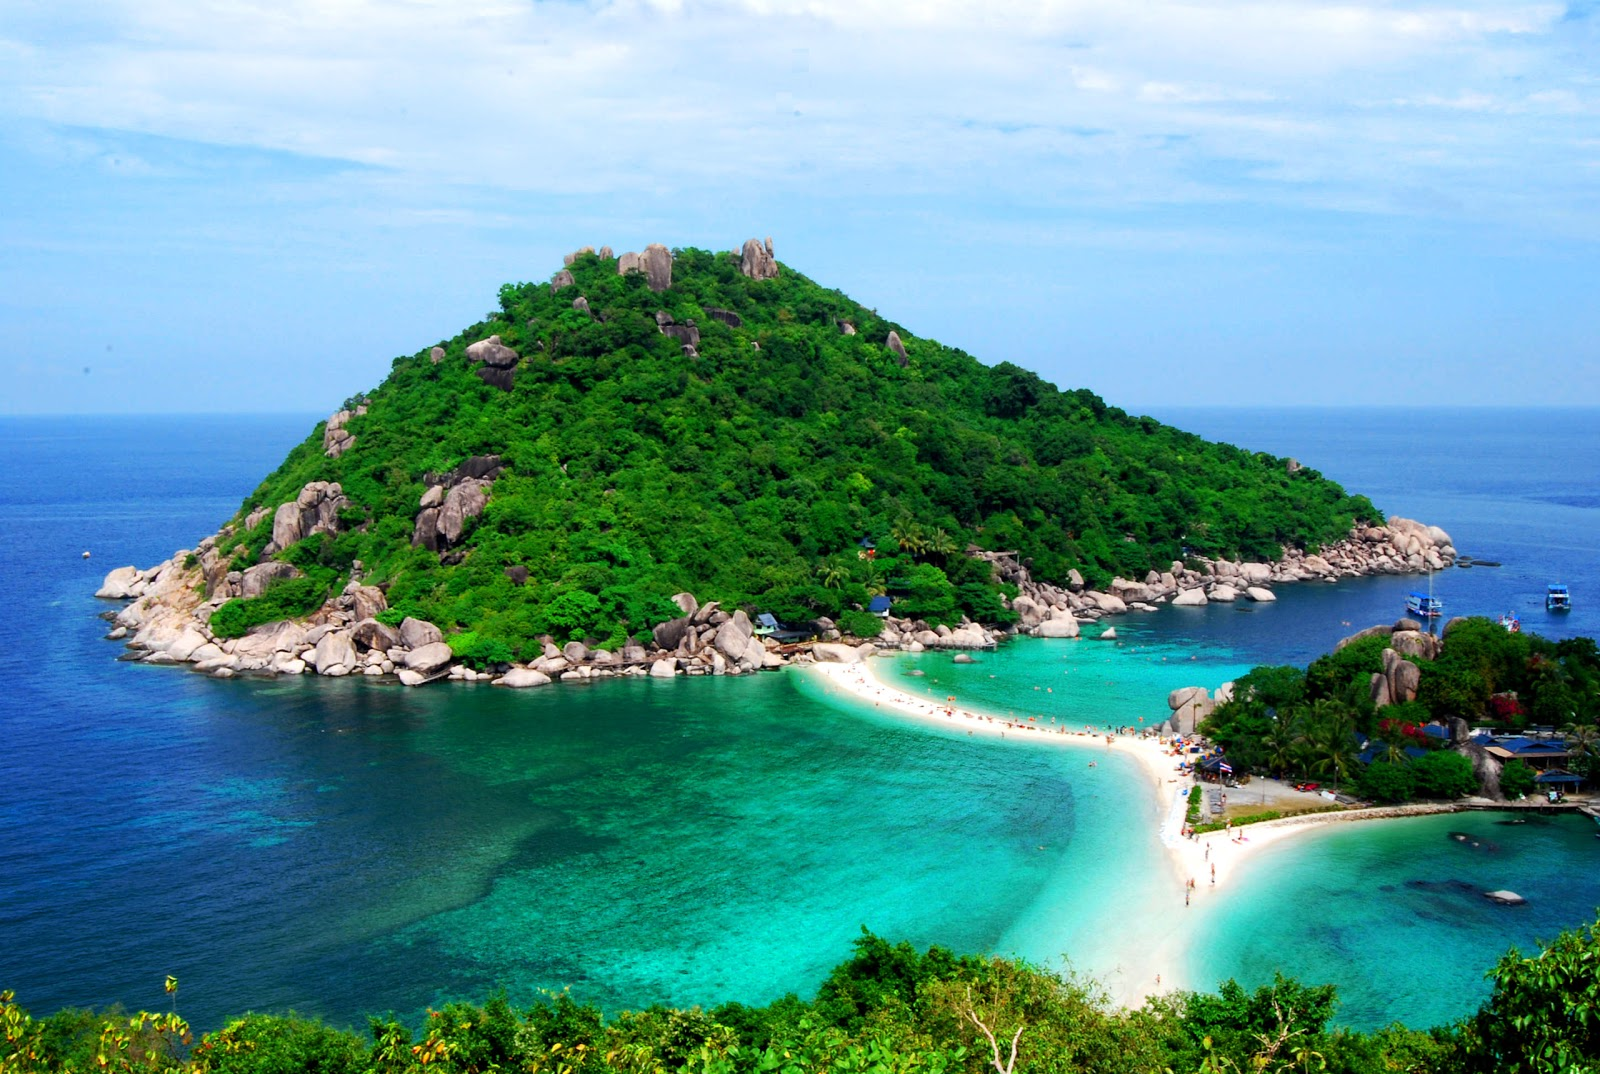 Thailand Travel: Koh Nang Yuan natural charm. Emerald crystal clear waters.